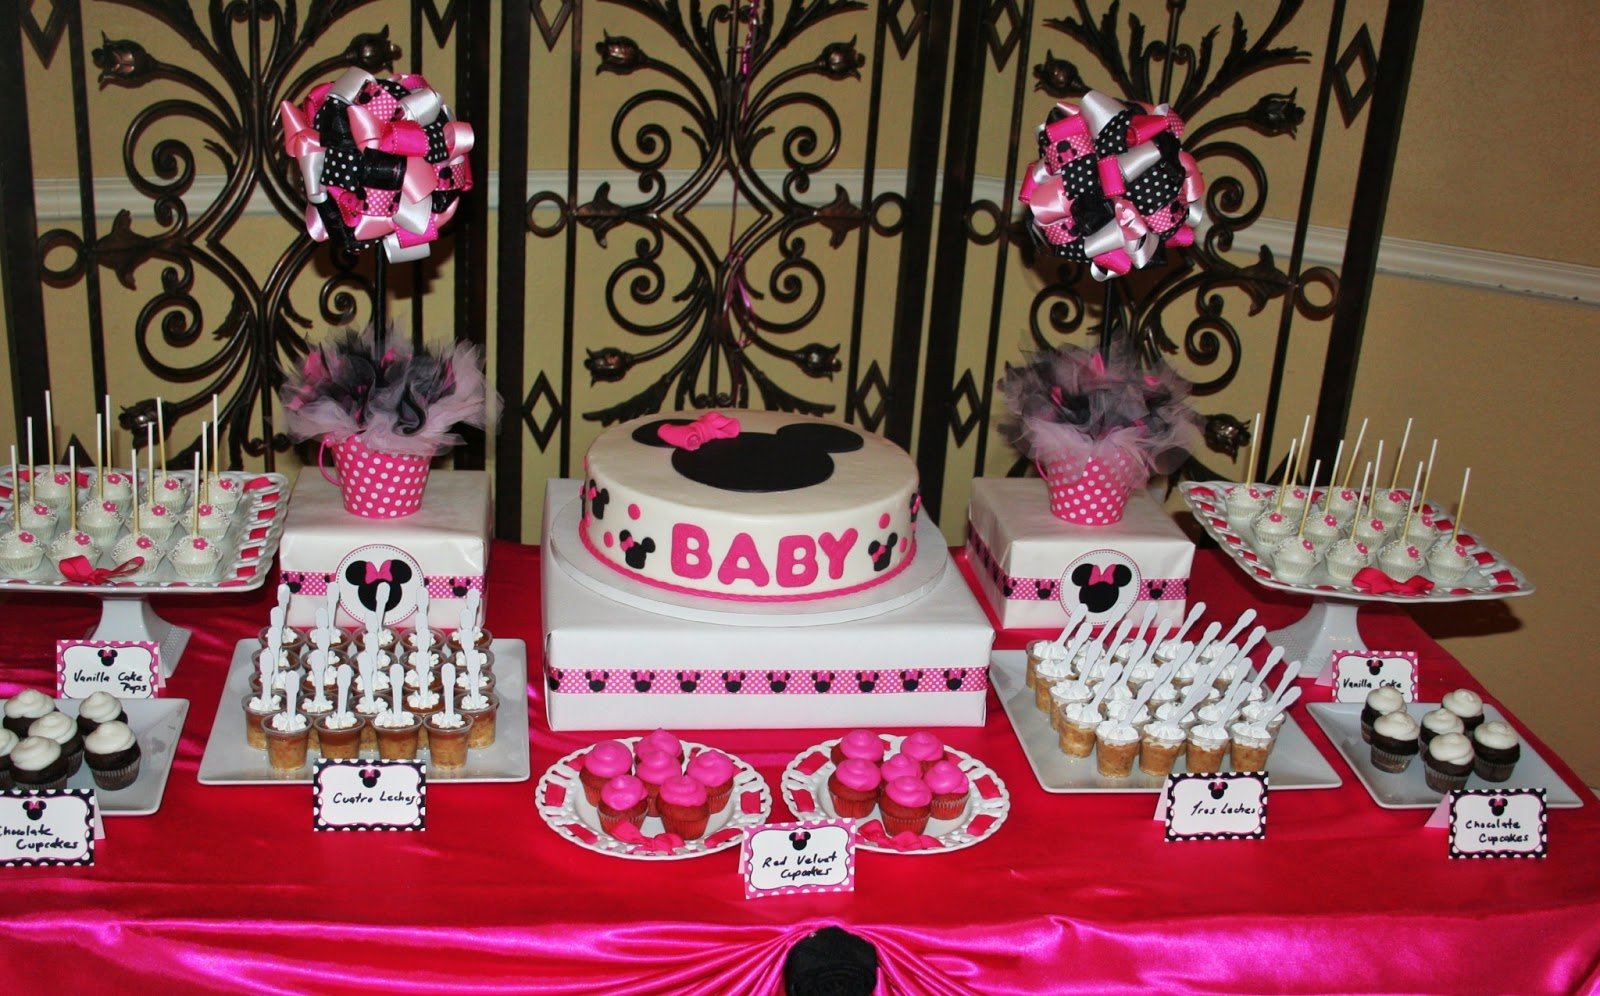 Baby minnie mouse baby shower decorations best baby for Baby minnie mouse decoration ideas